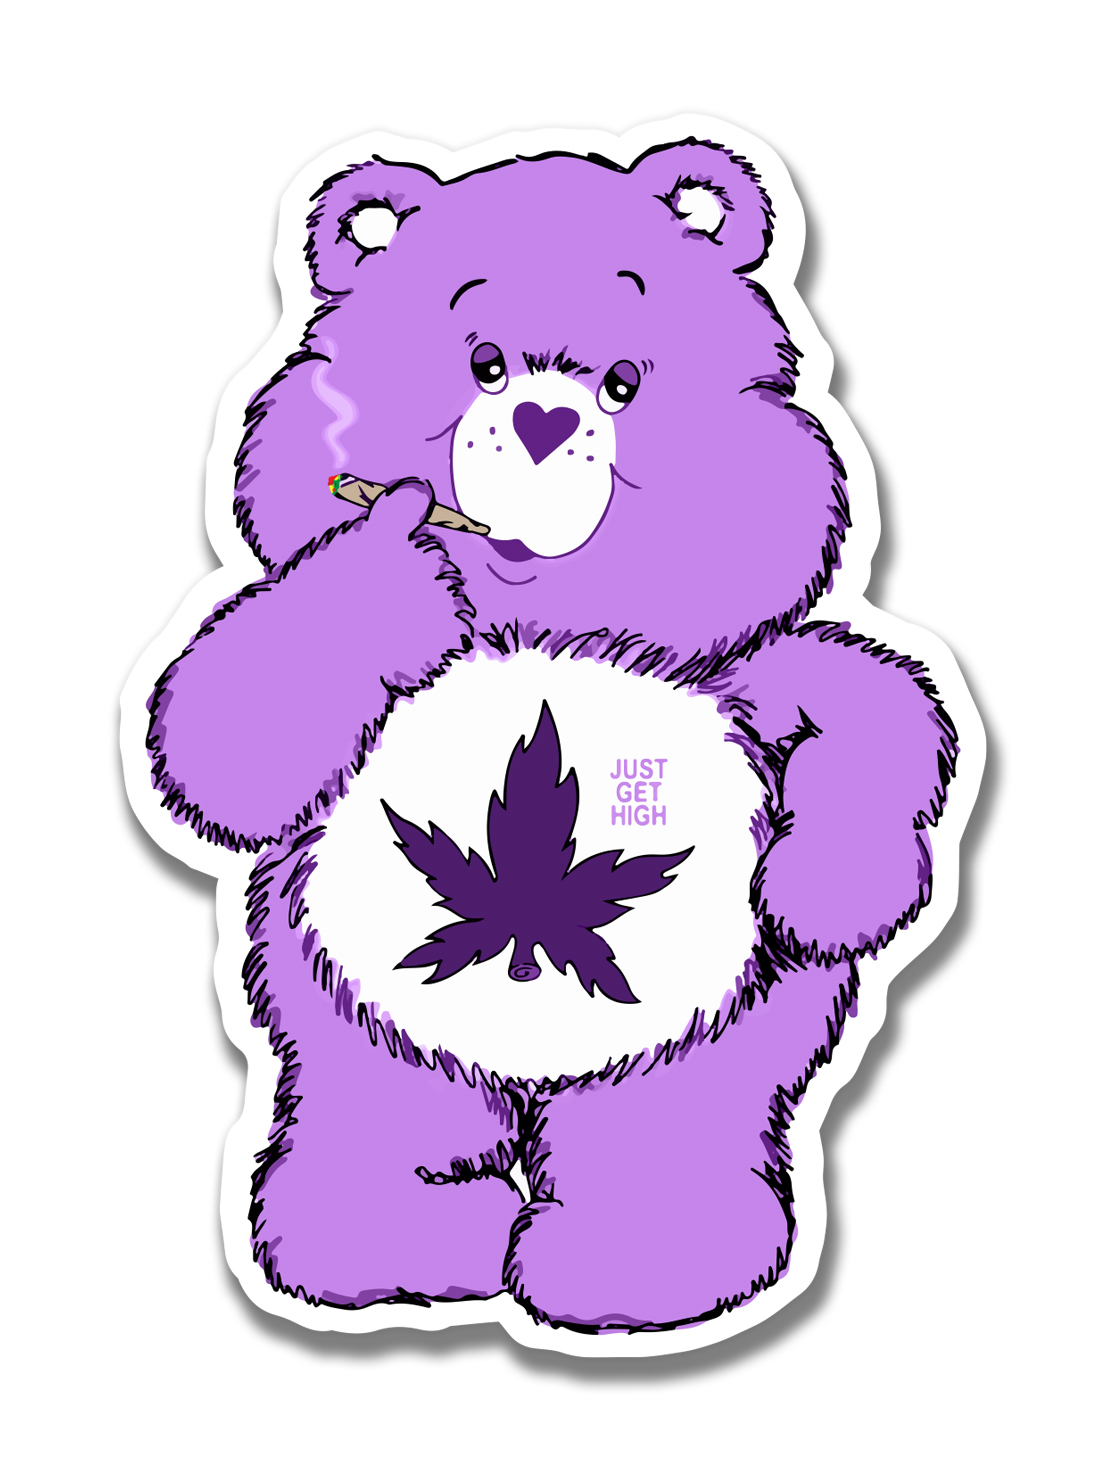 just get high_large sticker_cannabear_purps